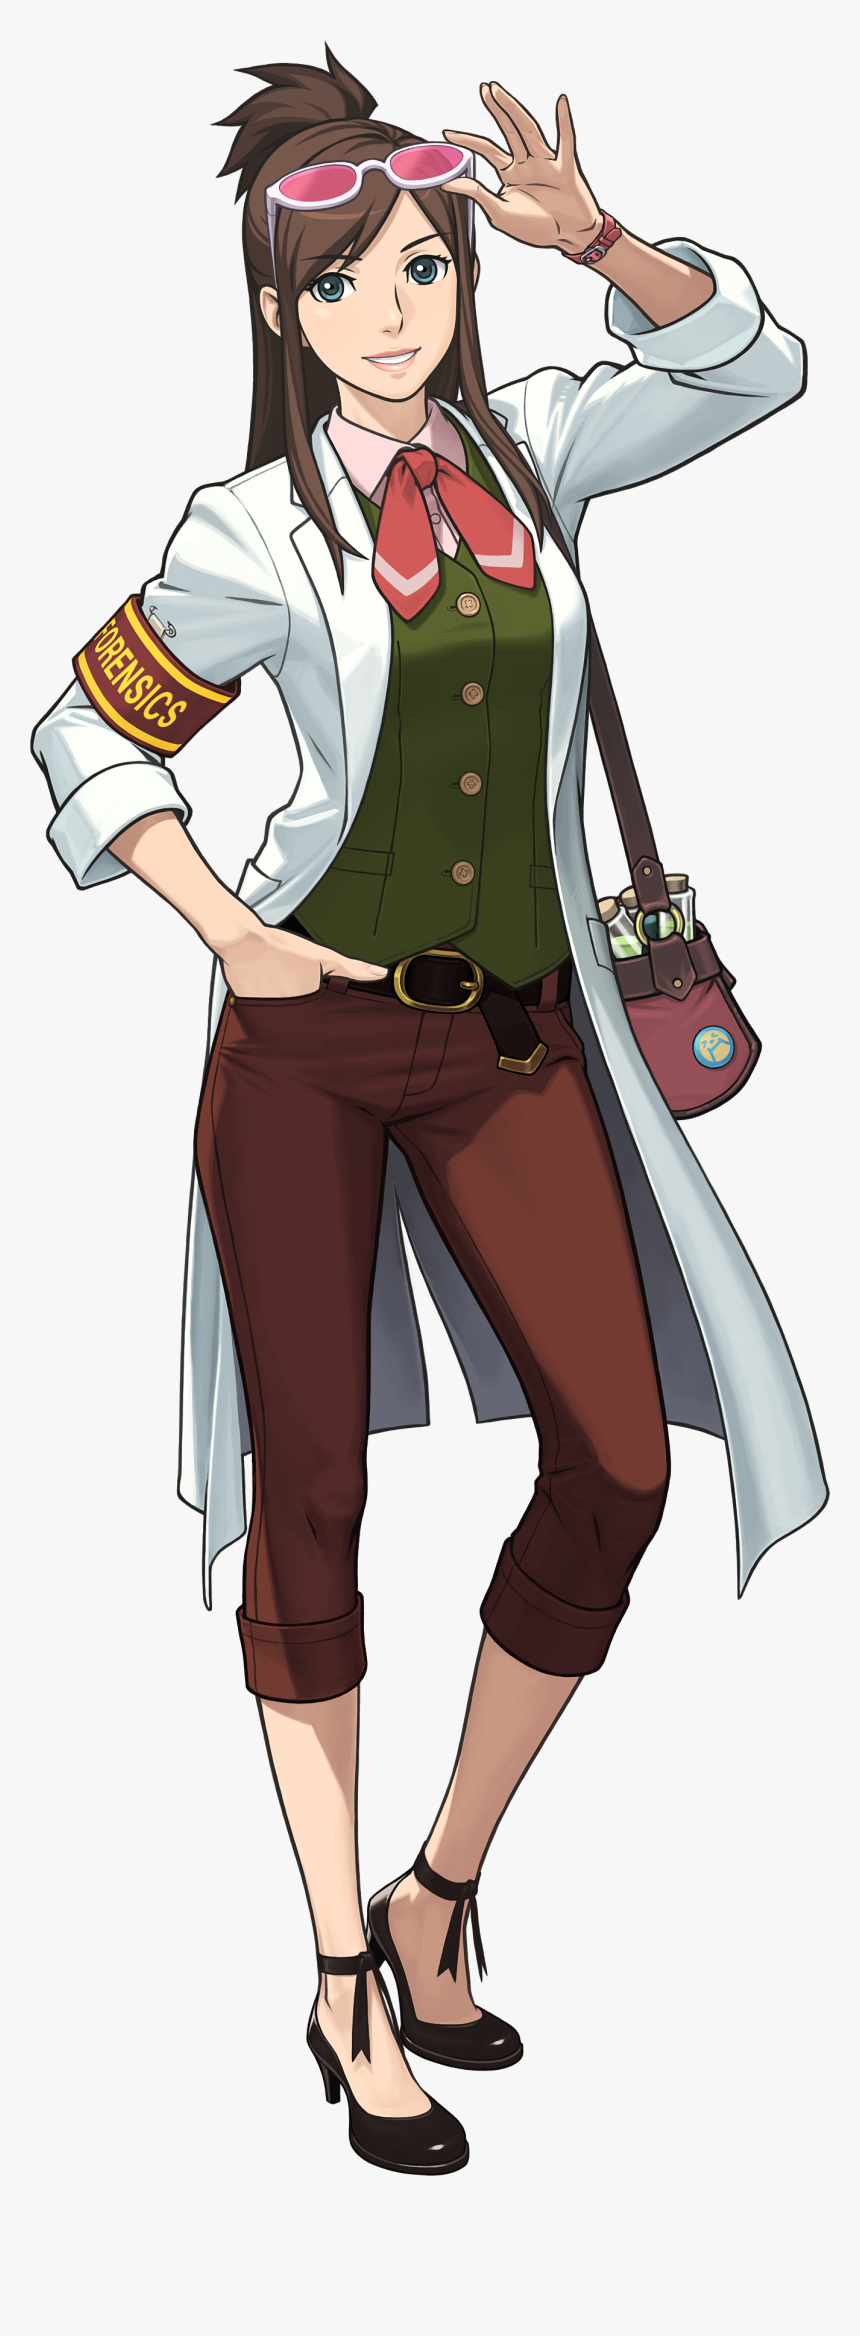 Female Ace Attorney Characters Hd Png Download Kindpng